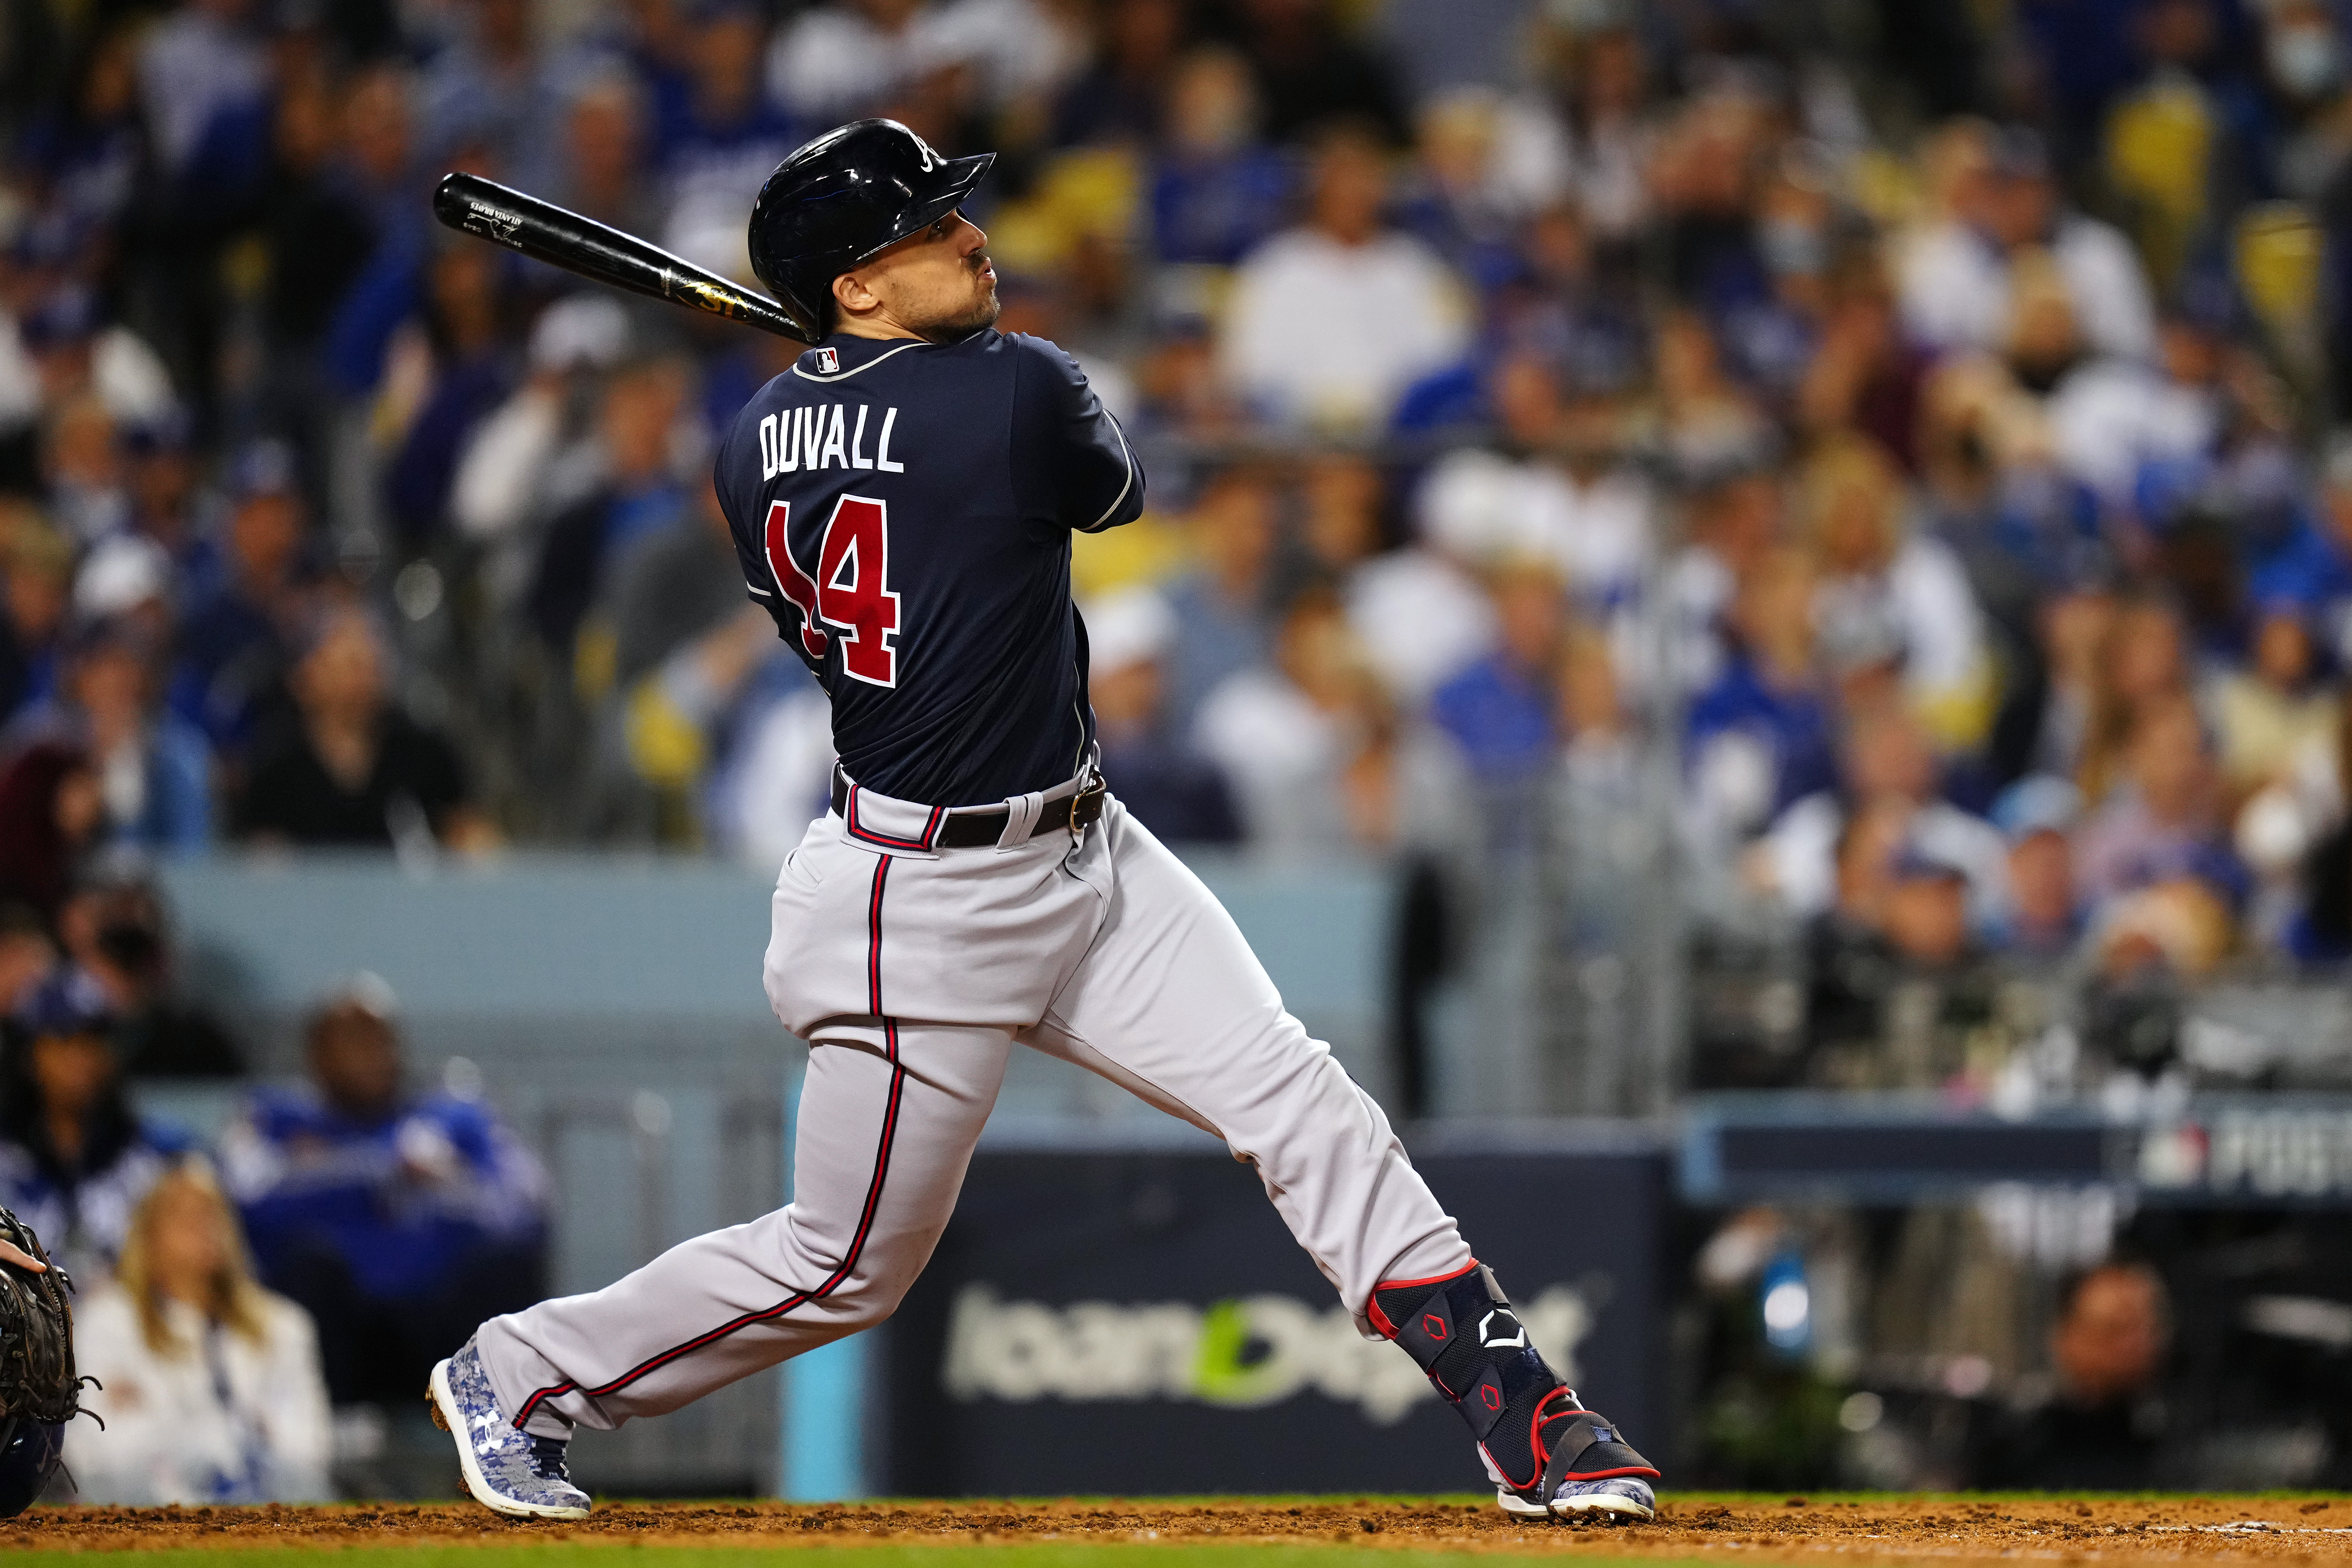 Adam Duvall #14 of the Atlanta Braves hits a sac fly to score Ozzie Albies #1 in the fifth inning during Game 4 of the NLCS between the Atlanta Braves and the Los Angeles Dodgers at Dodgers Stadium on Wednesday, October 20, 2021 in Los Angeles, California.